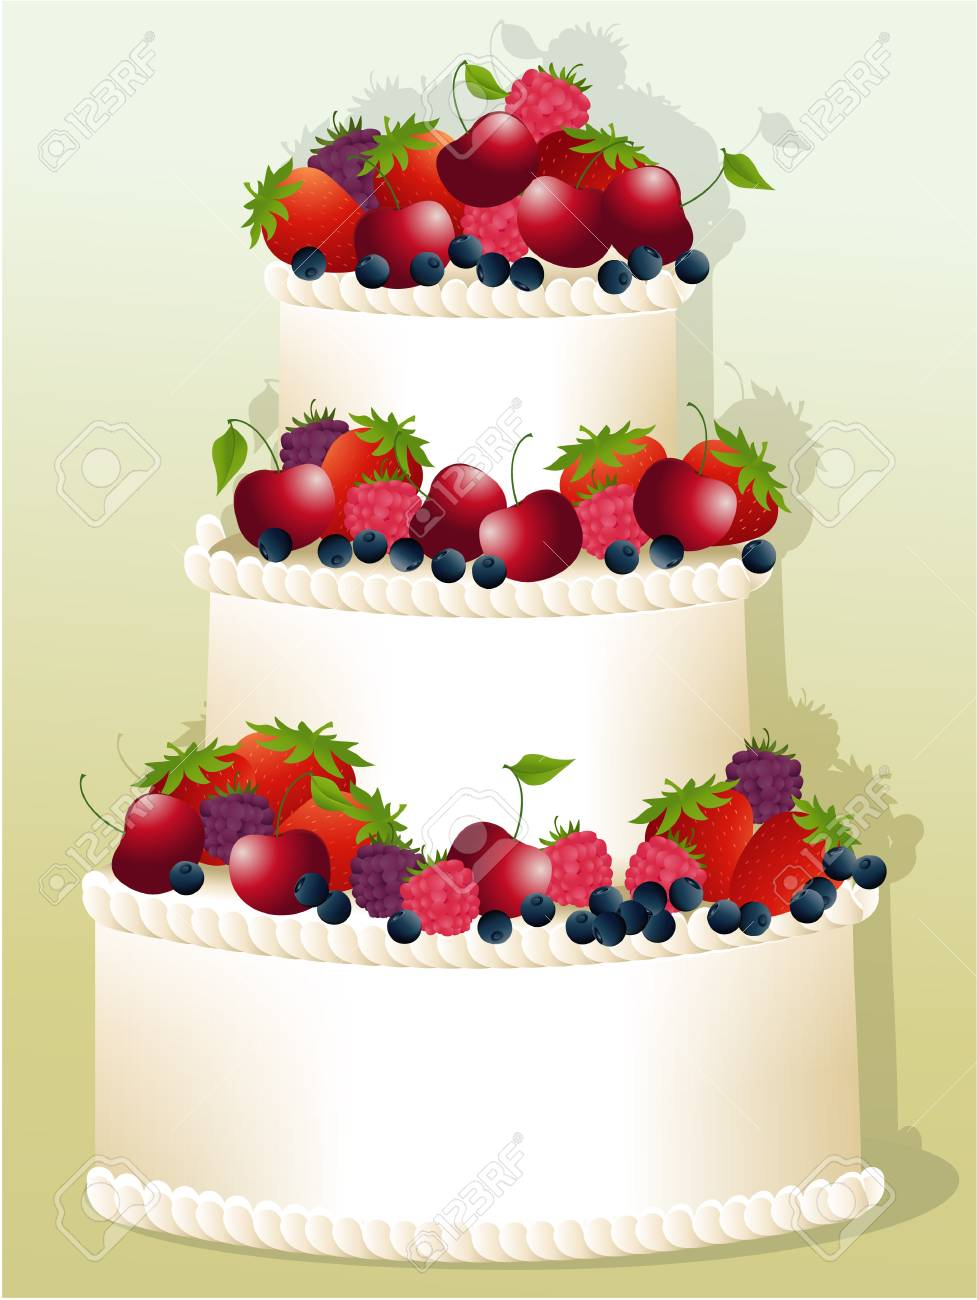 Big Birthday Cake With Fruits Stock Vector